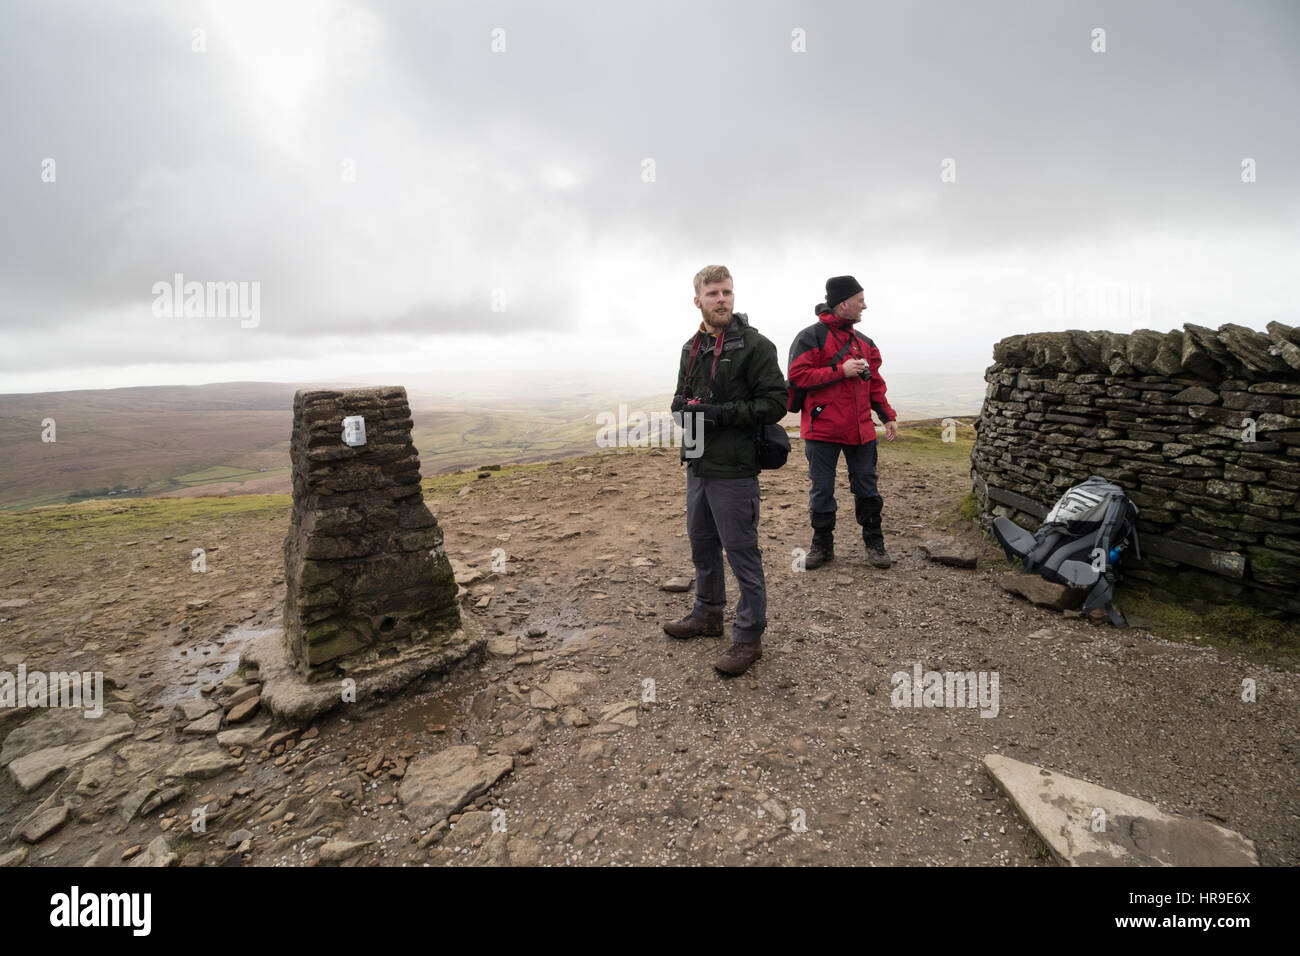 Hill-walkers at the summit of Pen-y-Ghent in the Yorkshire Dales - Stock Image